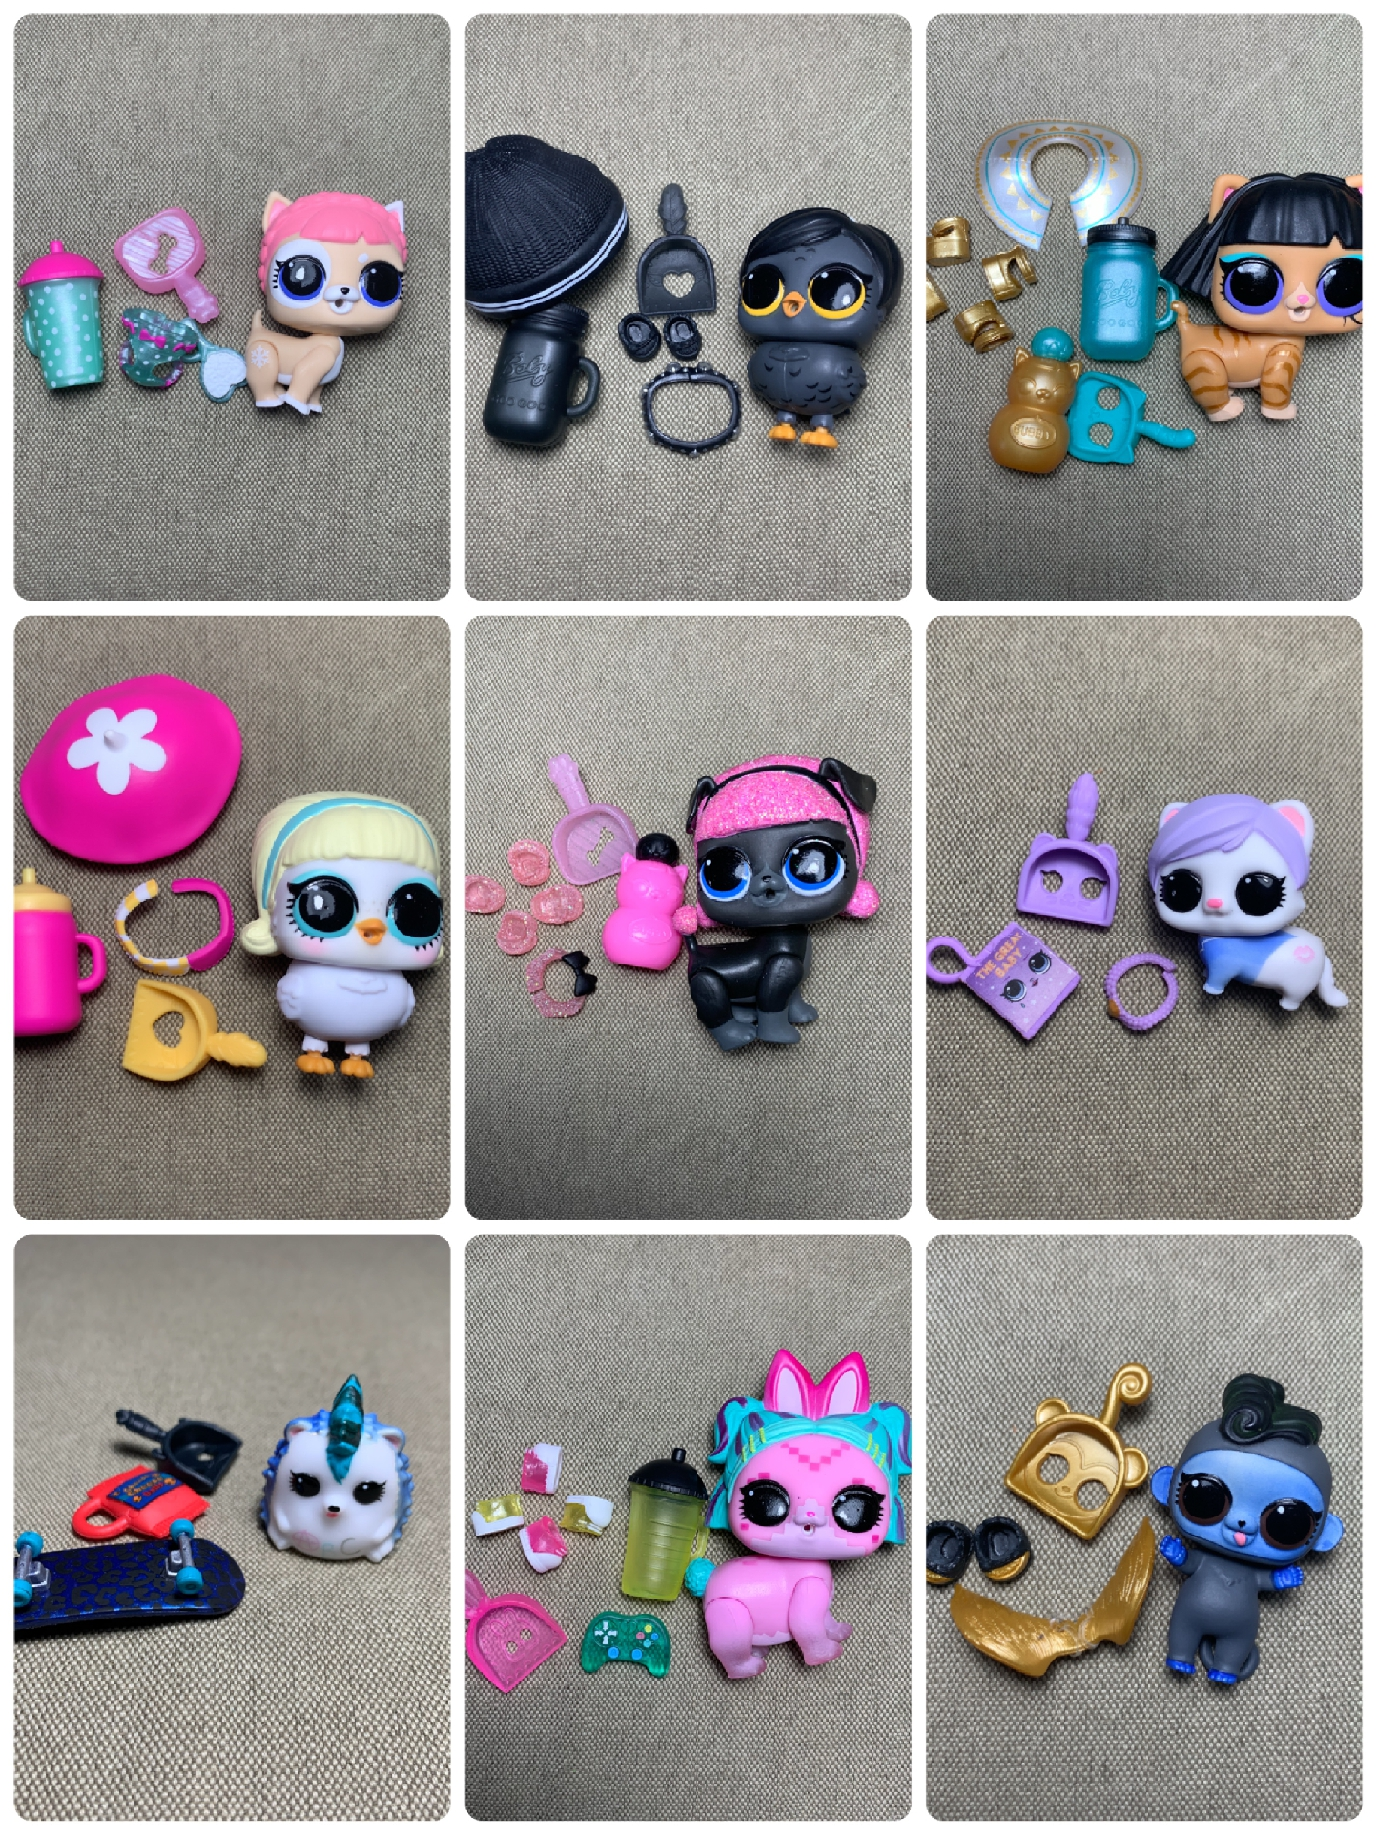 LOL Doll Surprise Original Pet Accessories Water Spray Pee Urine  Dolls Action Figure Model Girl Christmas Gift Toy For Children